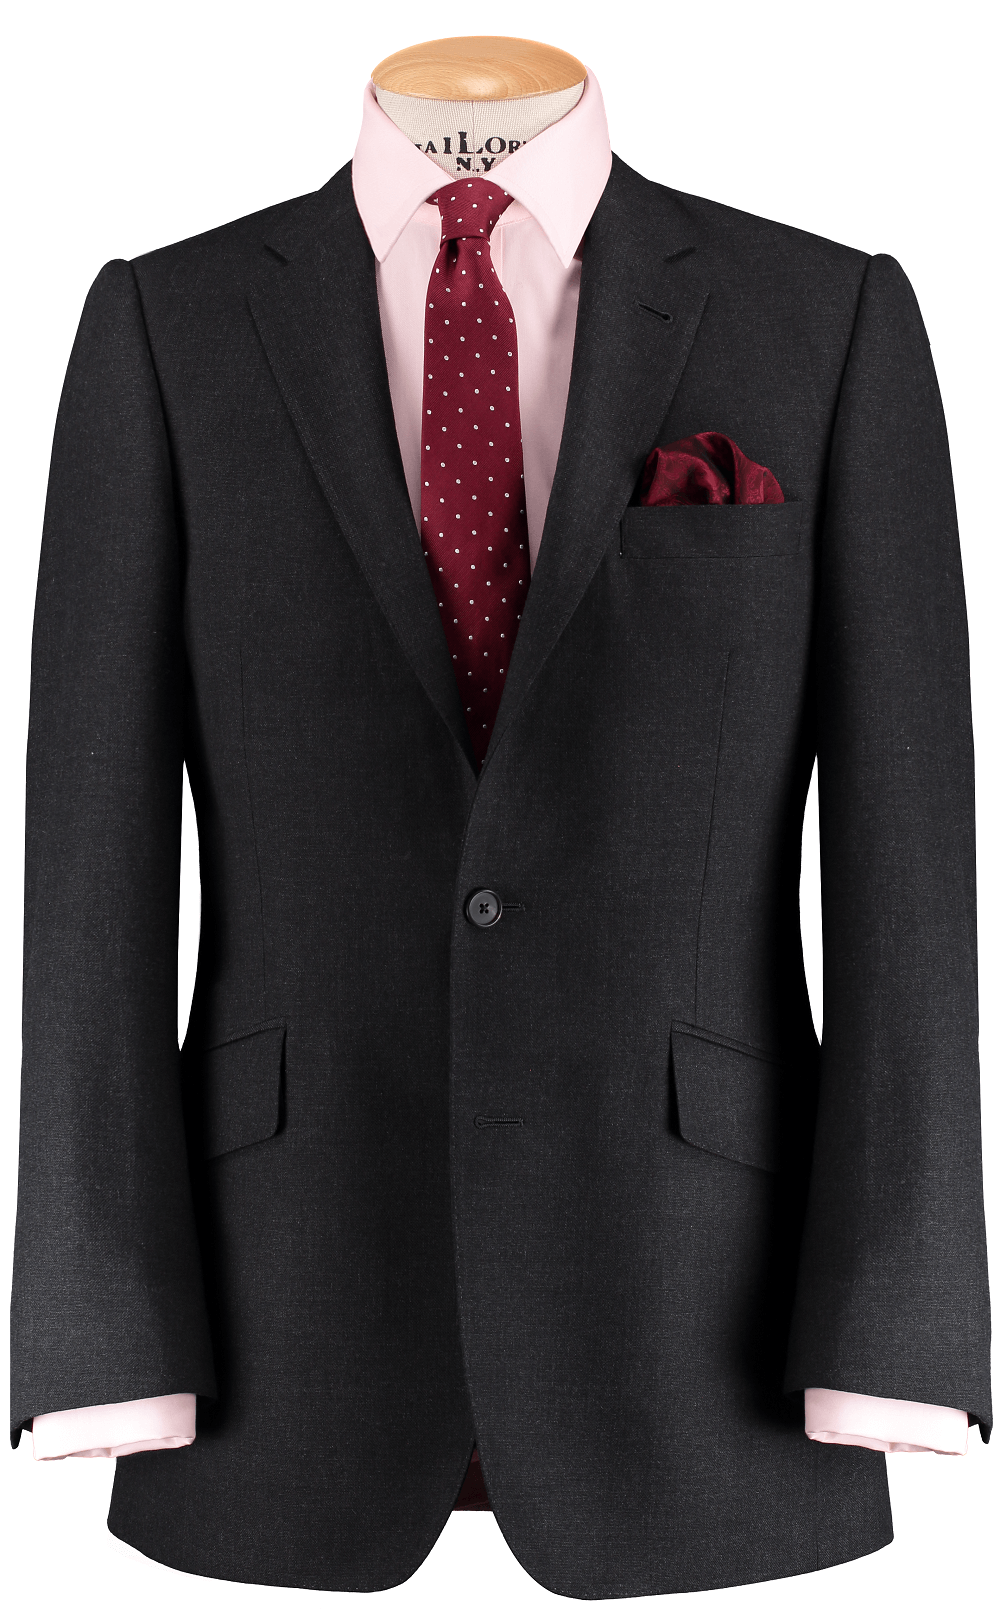 HW Dark Grey 3 Piece Suit